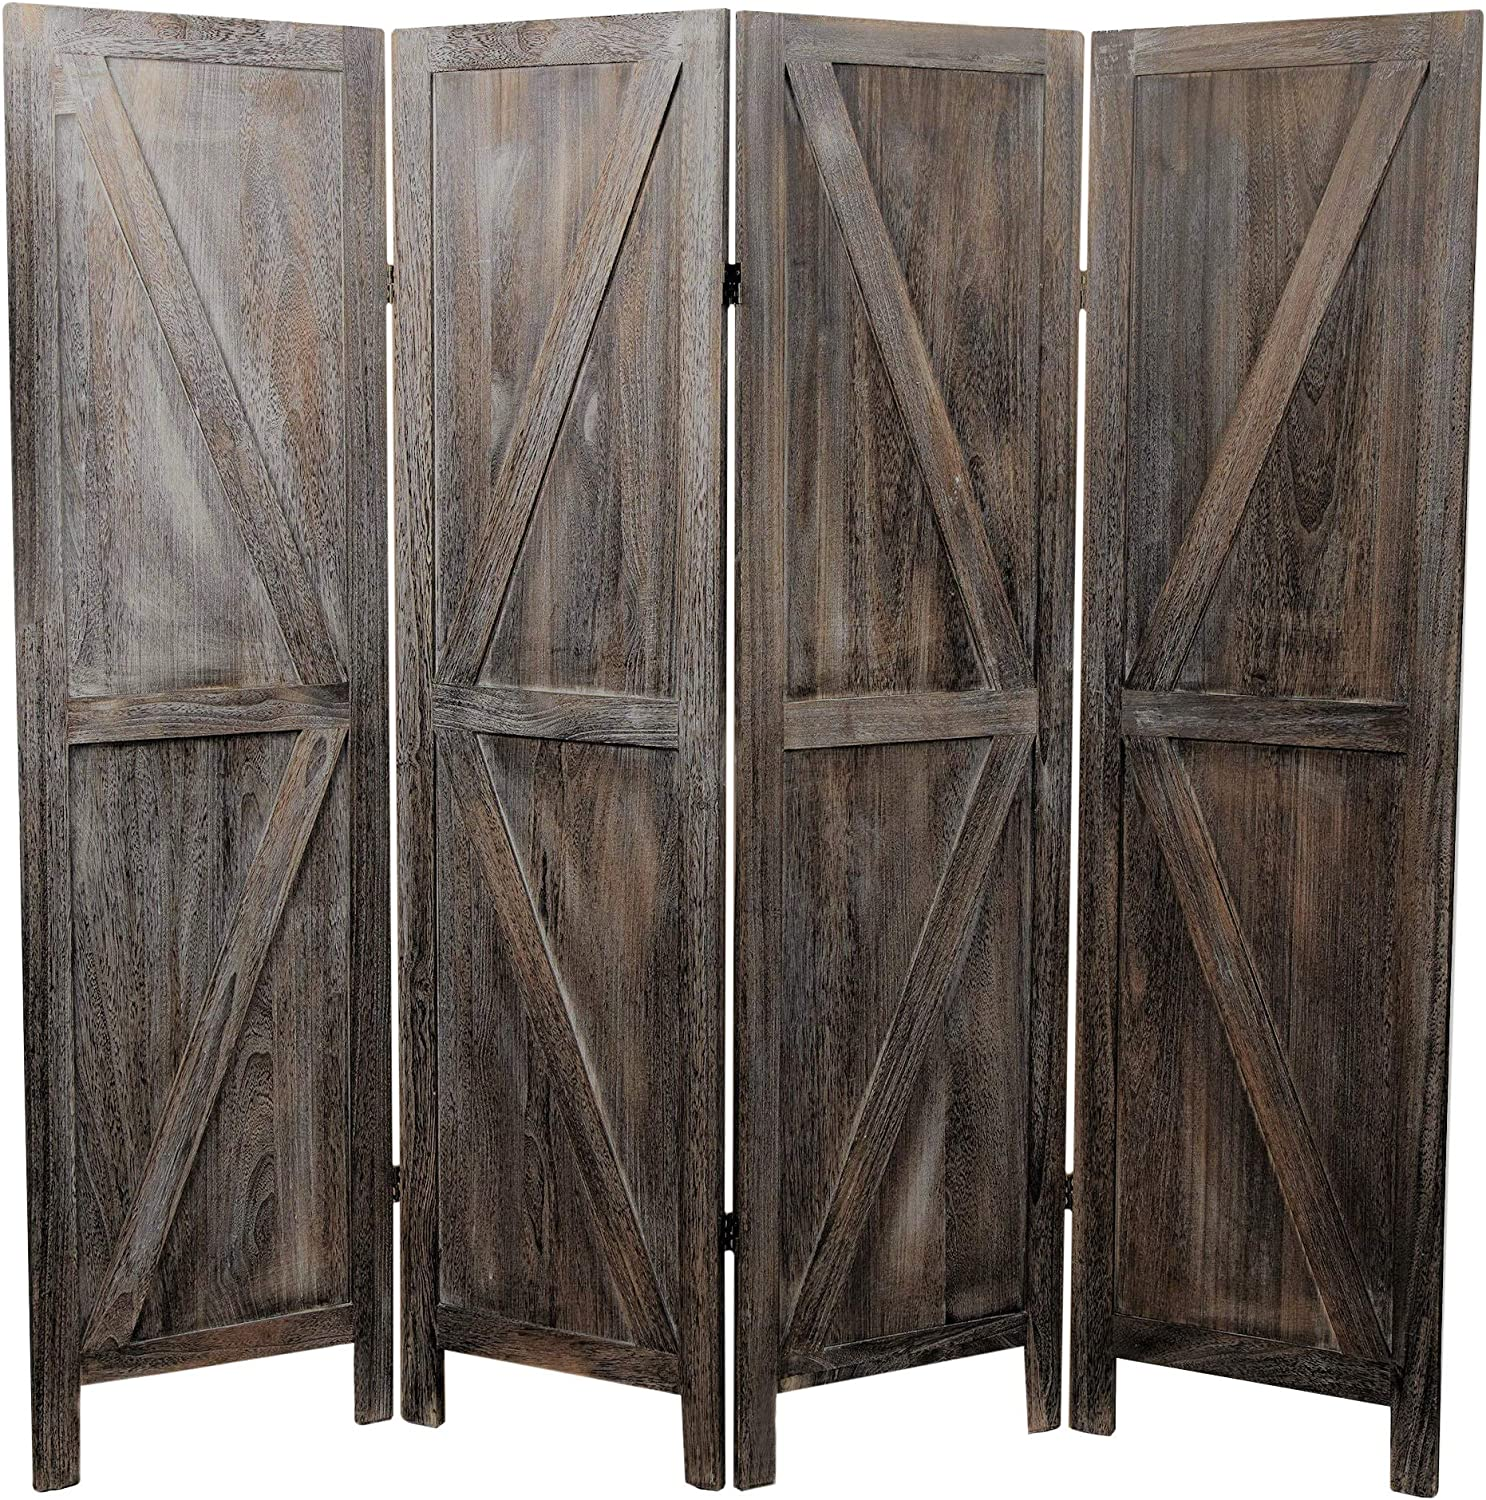 Premium Home Room Divider: Room dividers and Folding Privacy Screens, Privacy Screen, Partition Wall dividers for Rooms, Room Separator, Temporary Wall, Folding Screen, Rustic Barnwood (Barnwood)